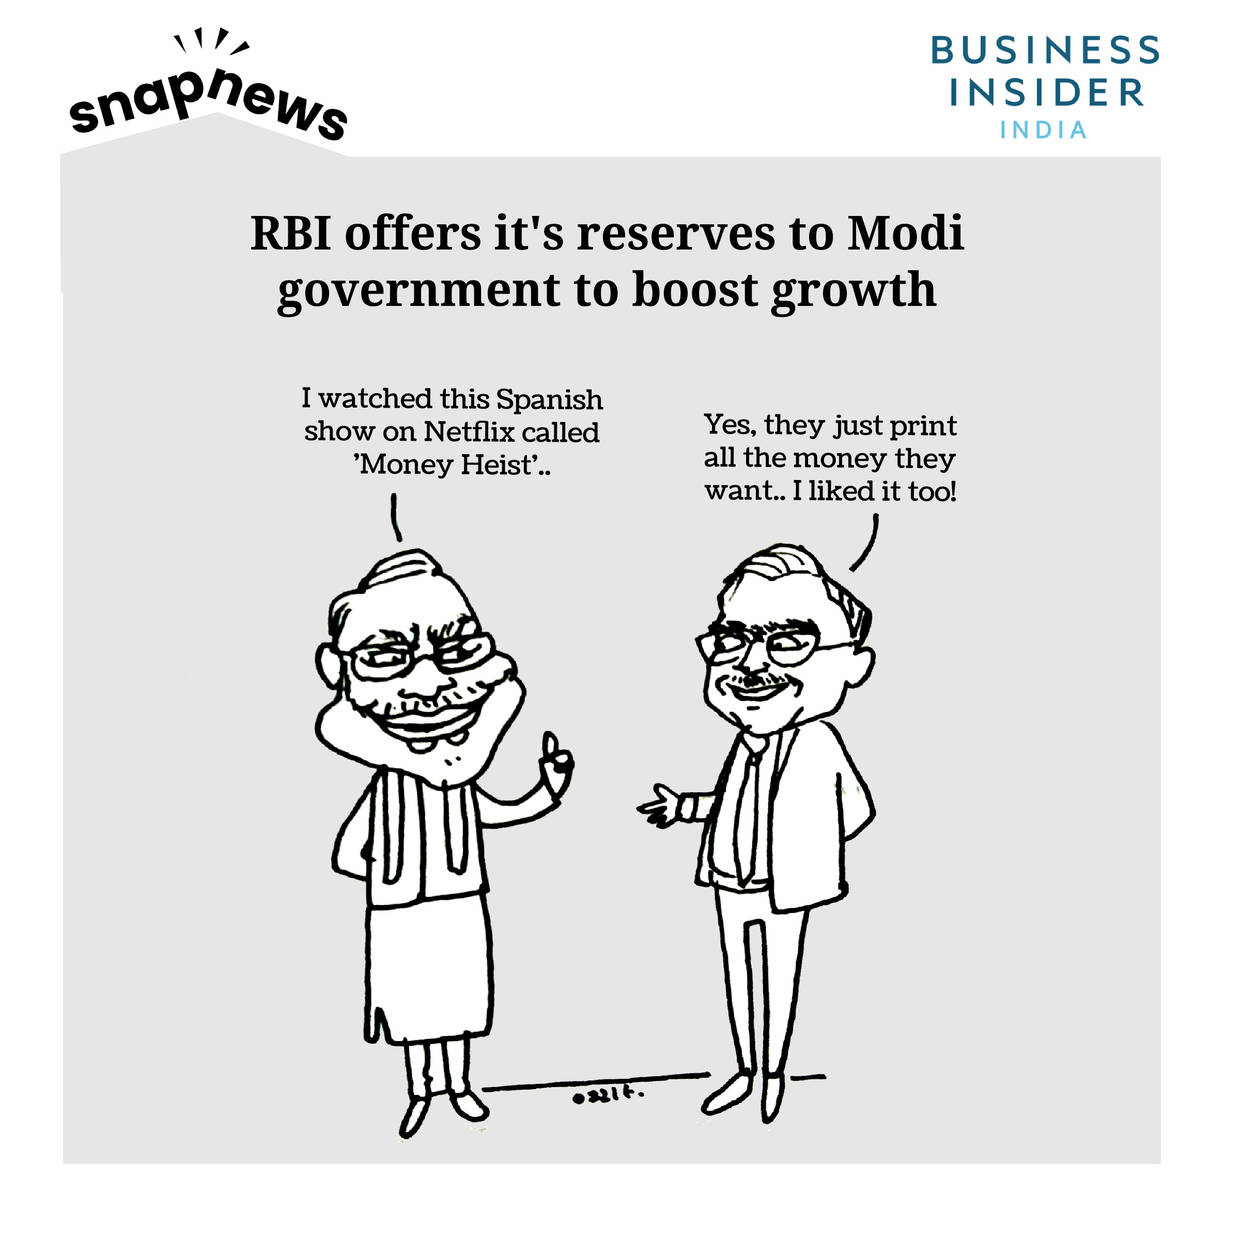 RBI offers Narendra Modi government money to boost growth-- share markets cheer